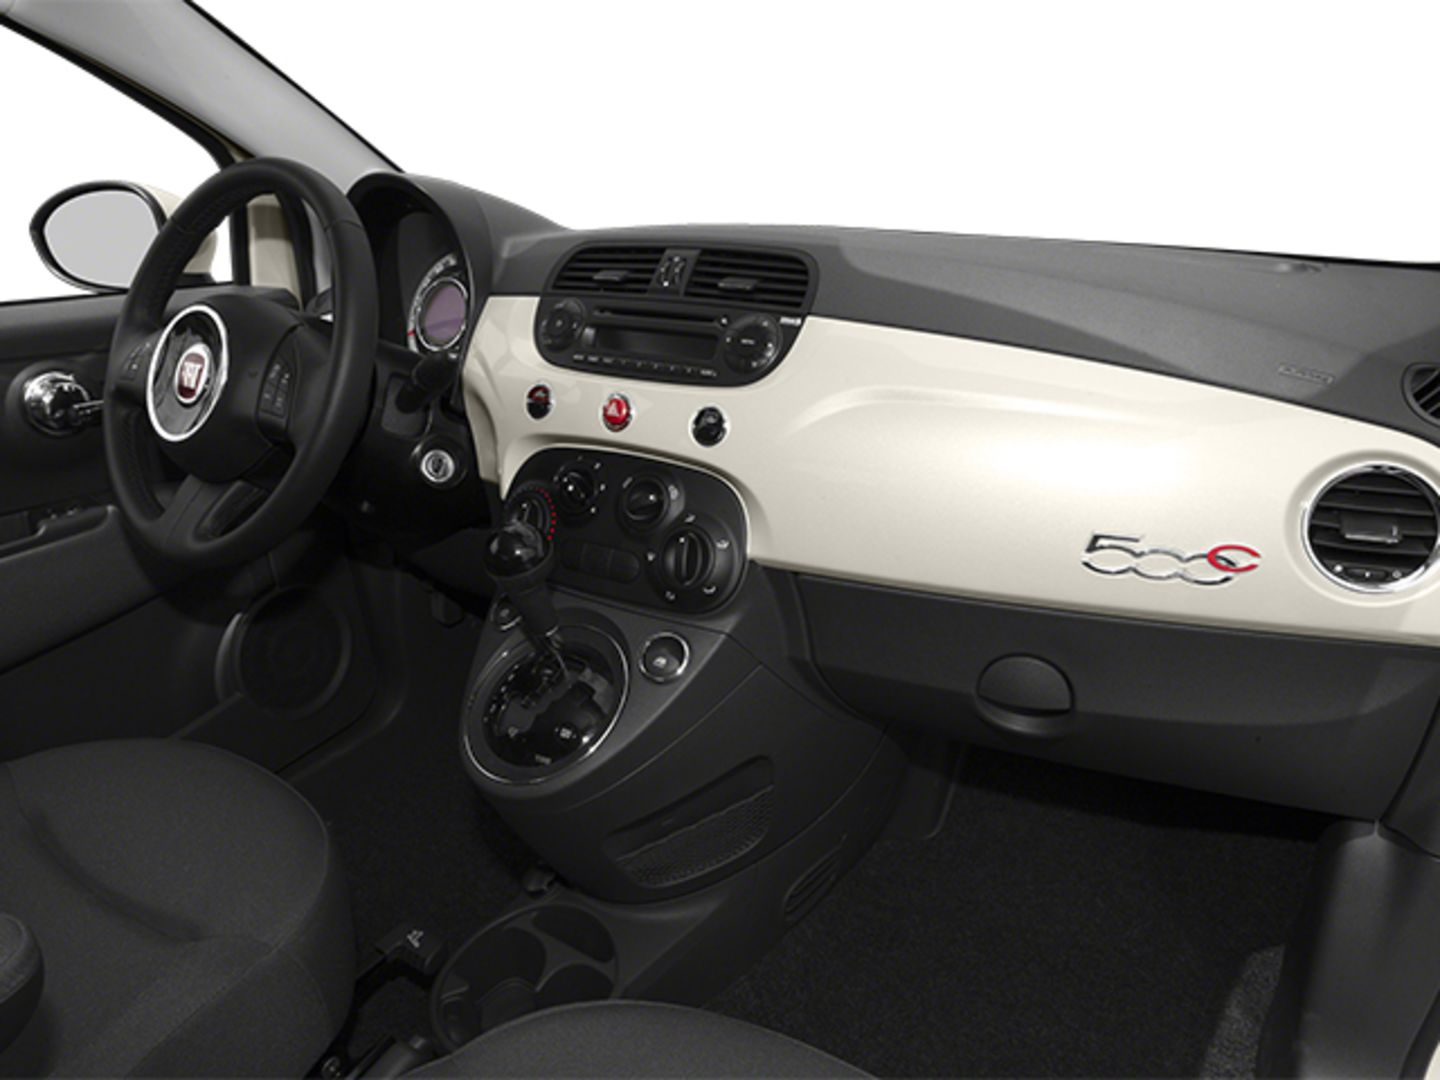 2013 FIAT 500 Lounge for sale in Mississauga, Ontario